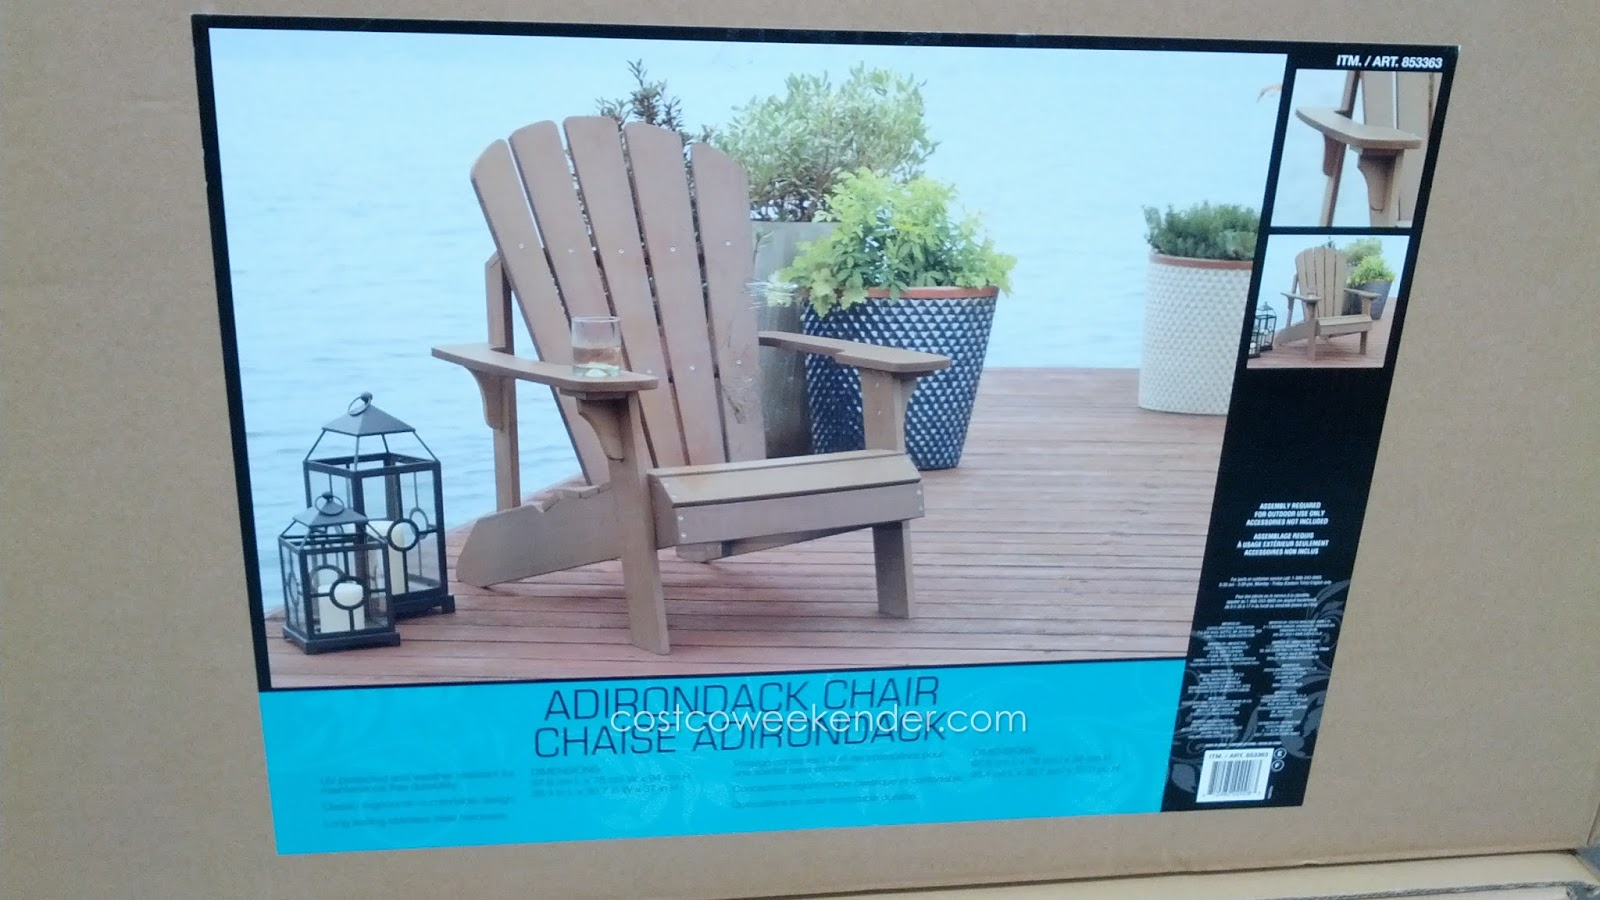 Costco Adirondack Chairs Faux Wood Adirondack Chair Costco Weekender